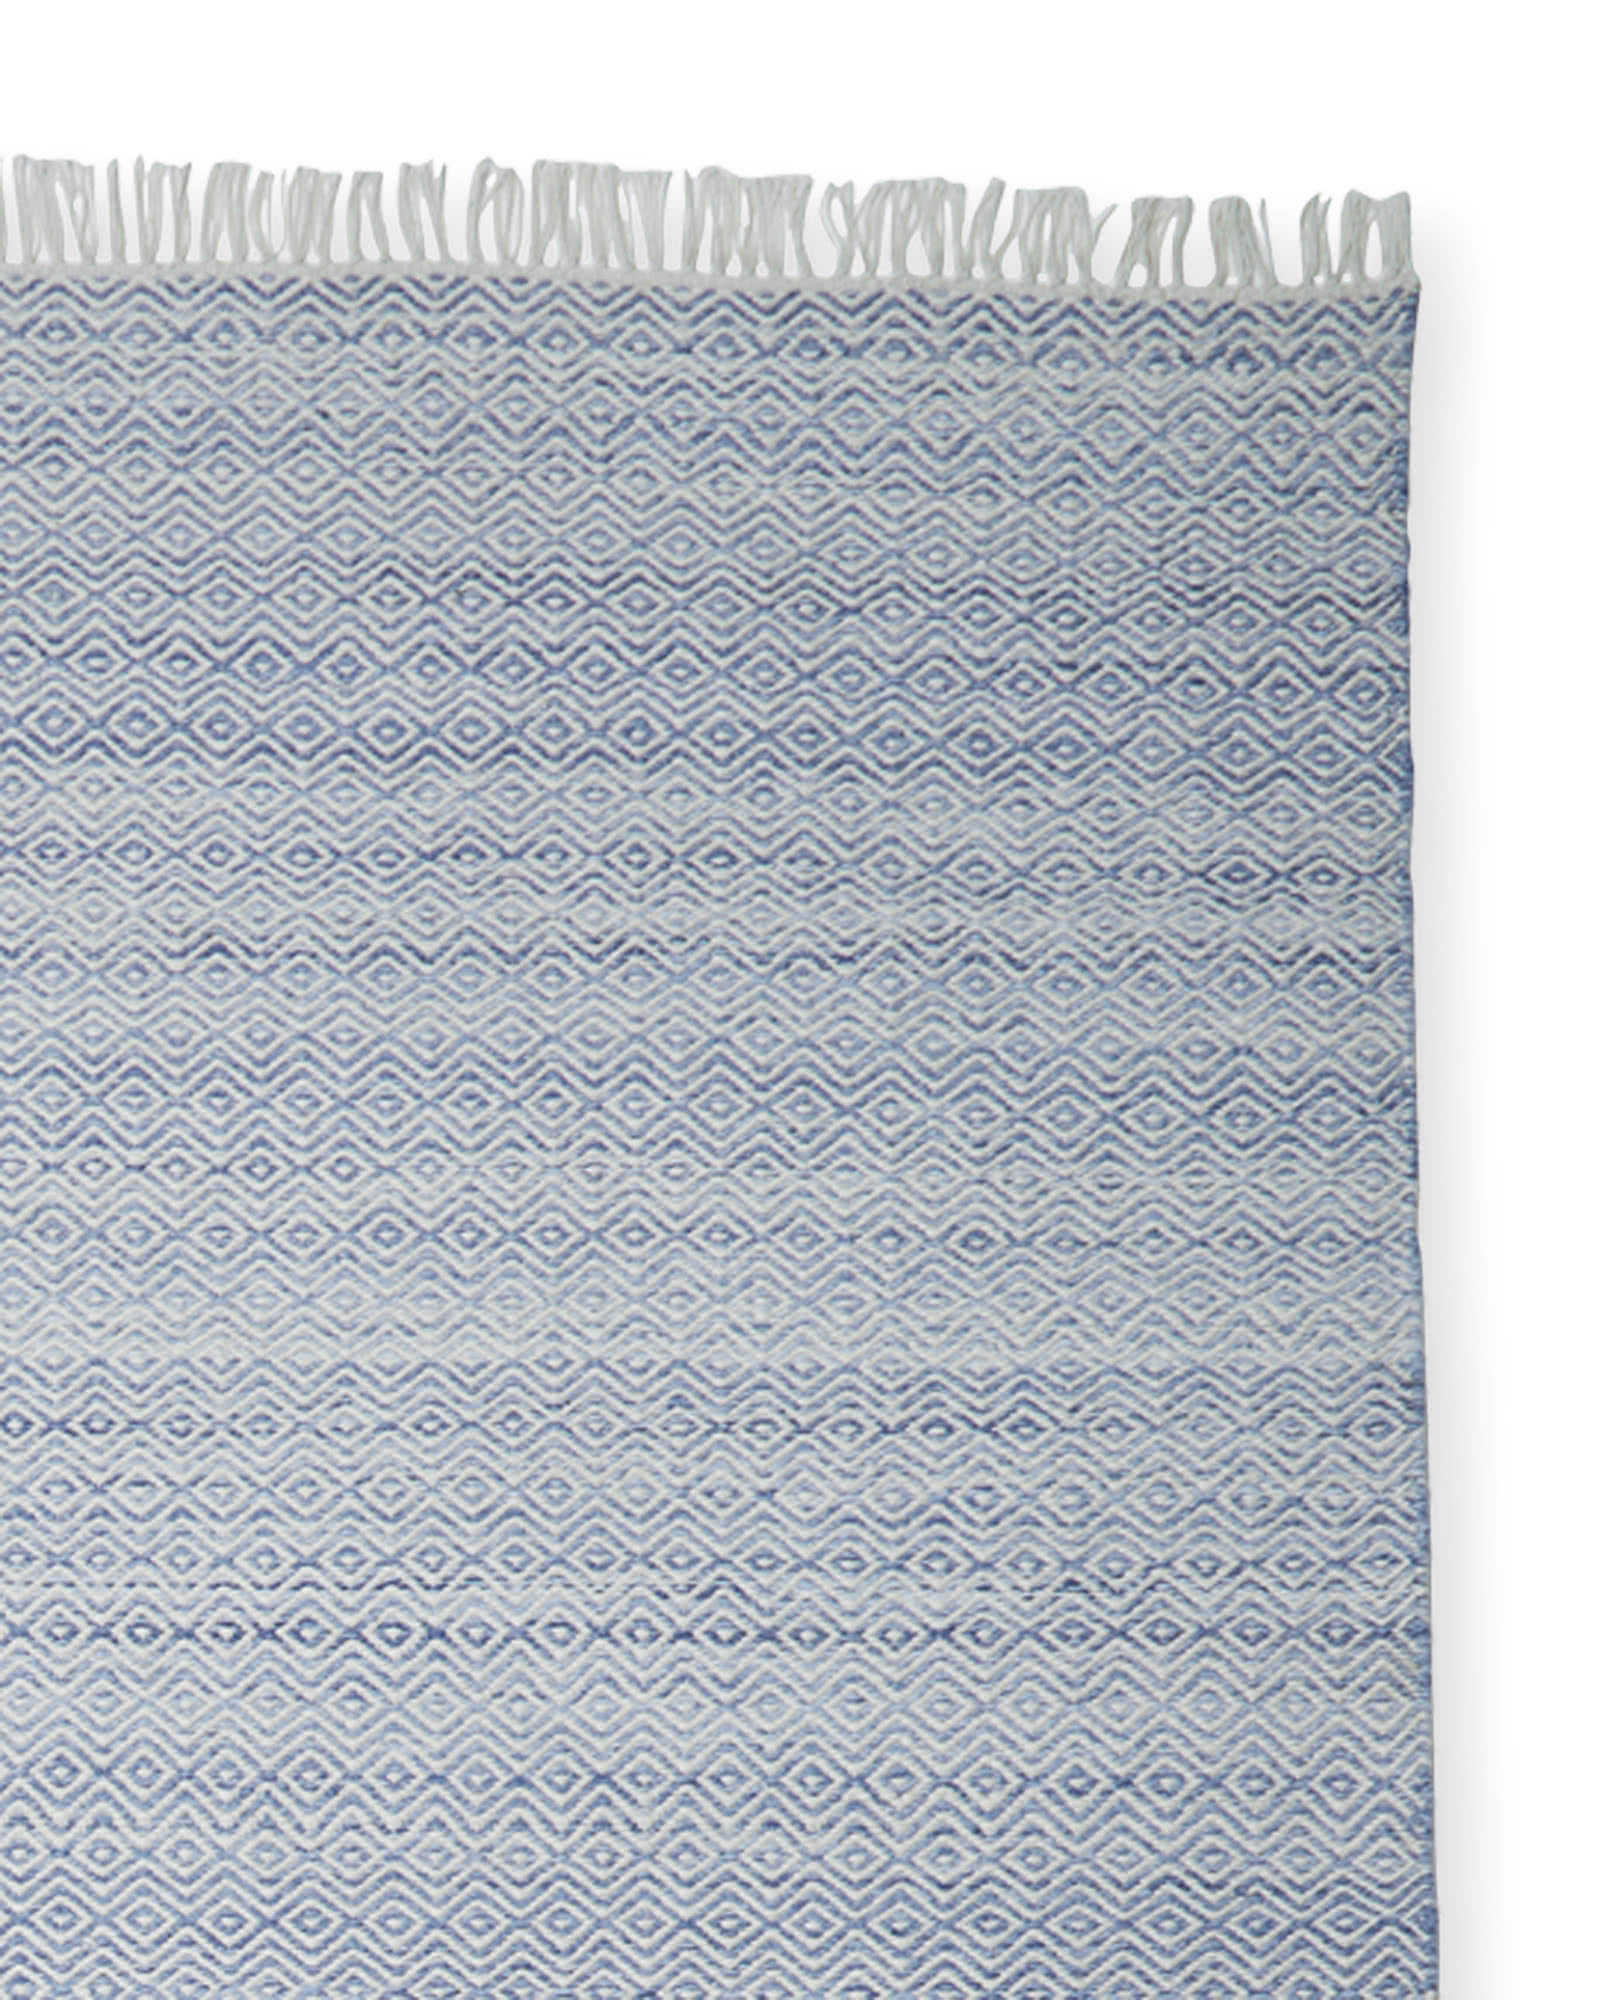 Seaview Outdoor Rug Serena & Lily